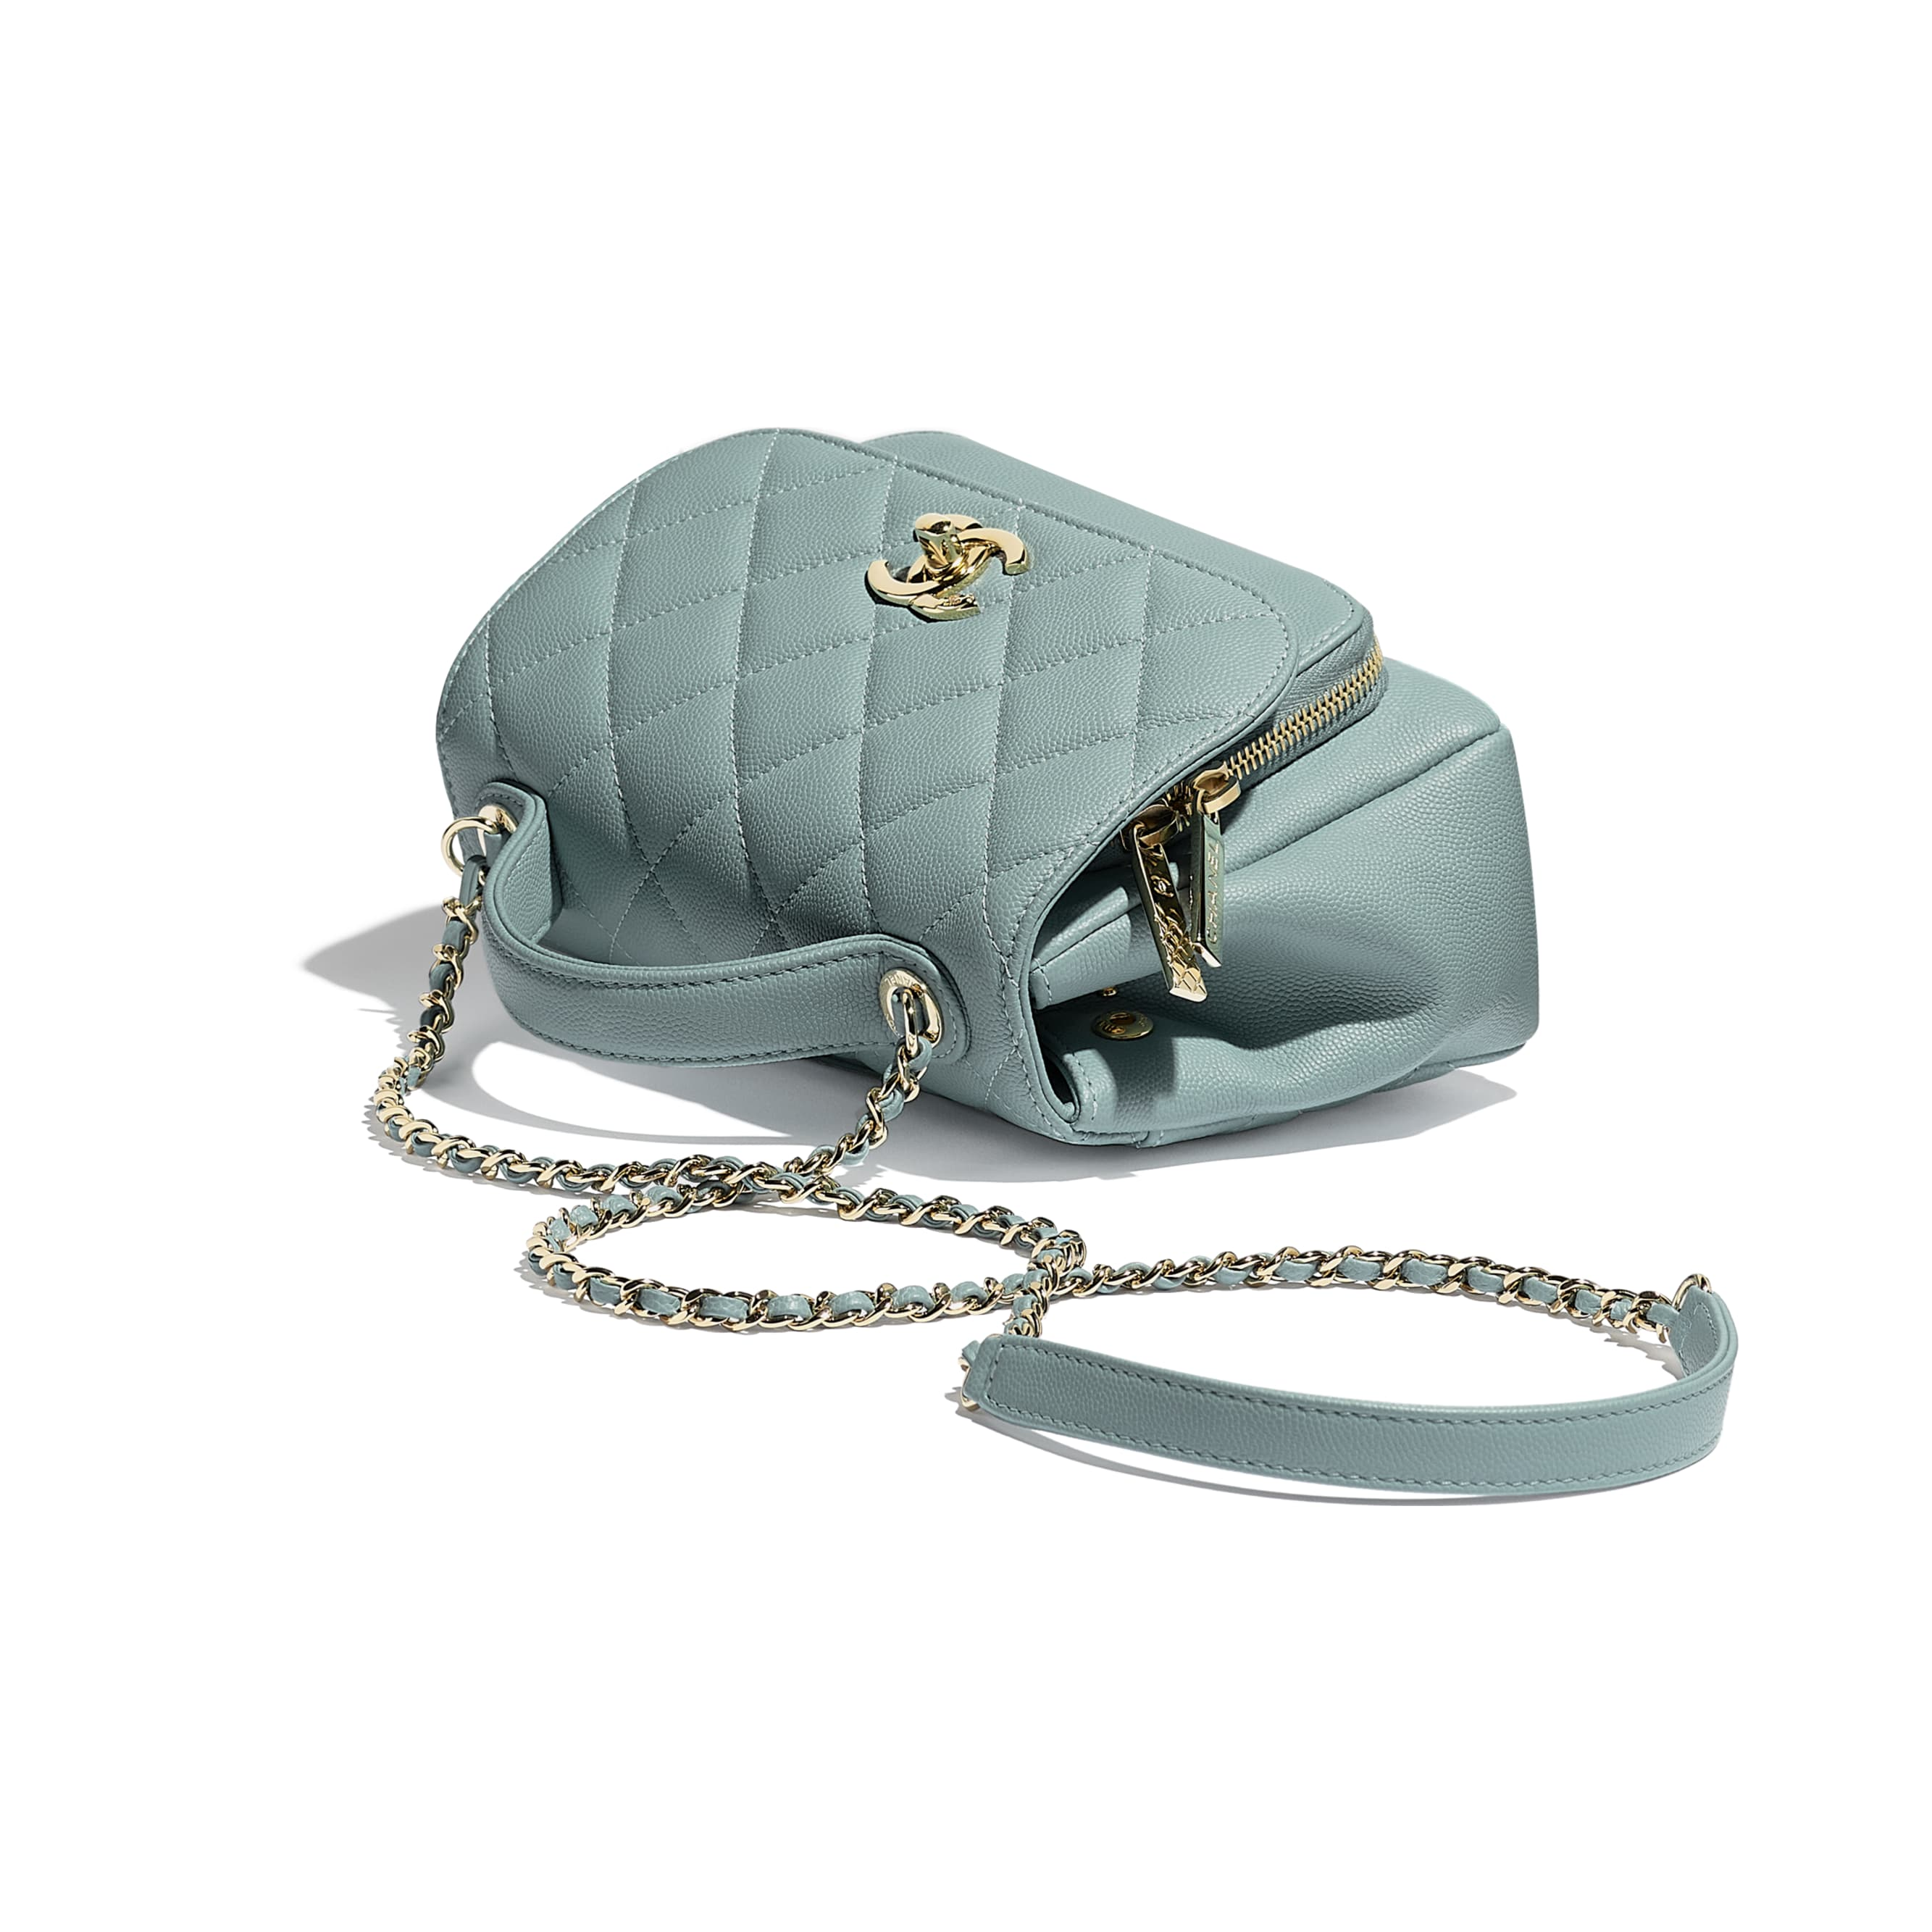 Small Flap Bag With Top Handle - Blue - Grained Calfskin & Gold-Tone Metal - CHANEL - Extra view - see standard sized version